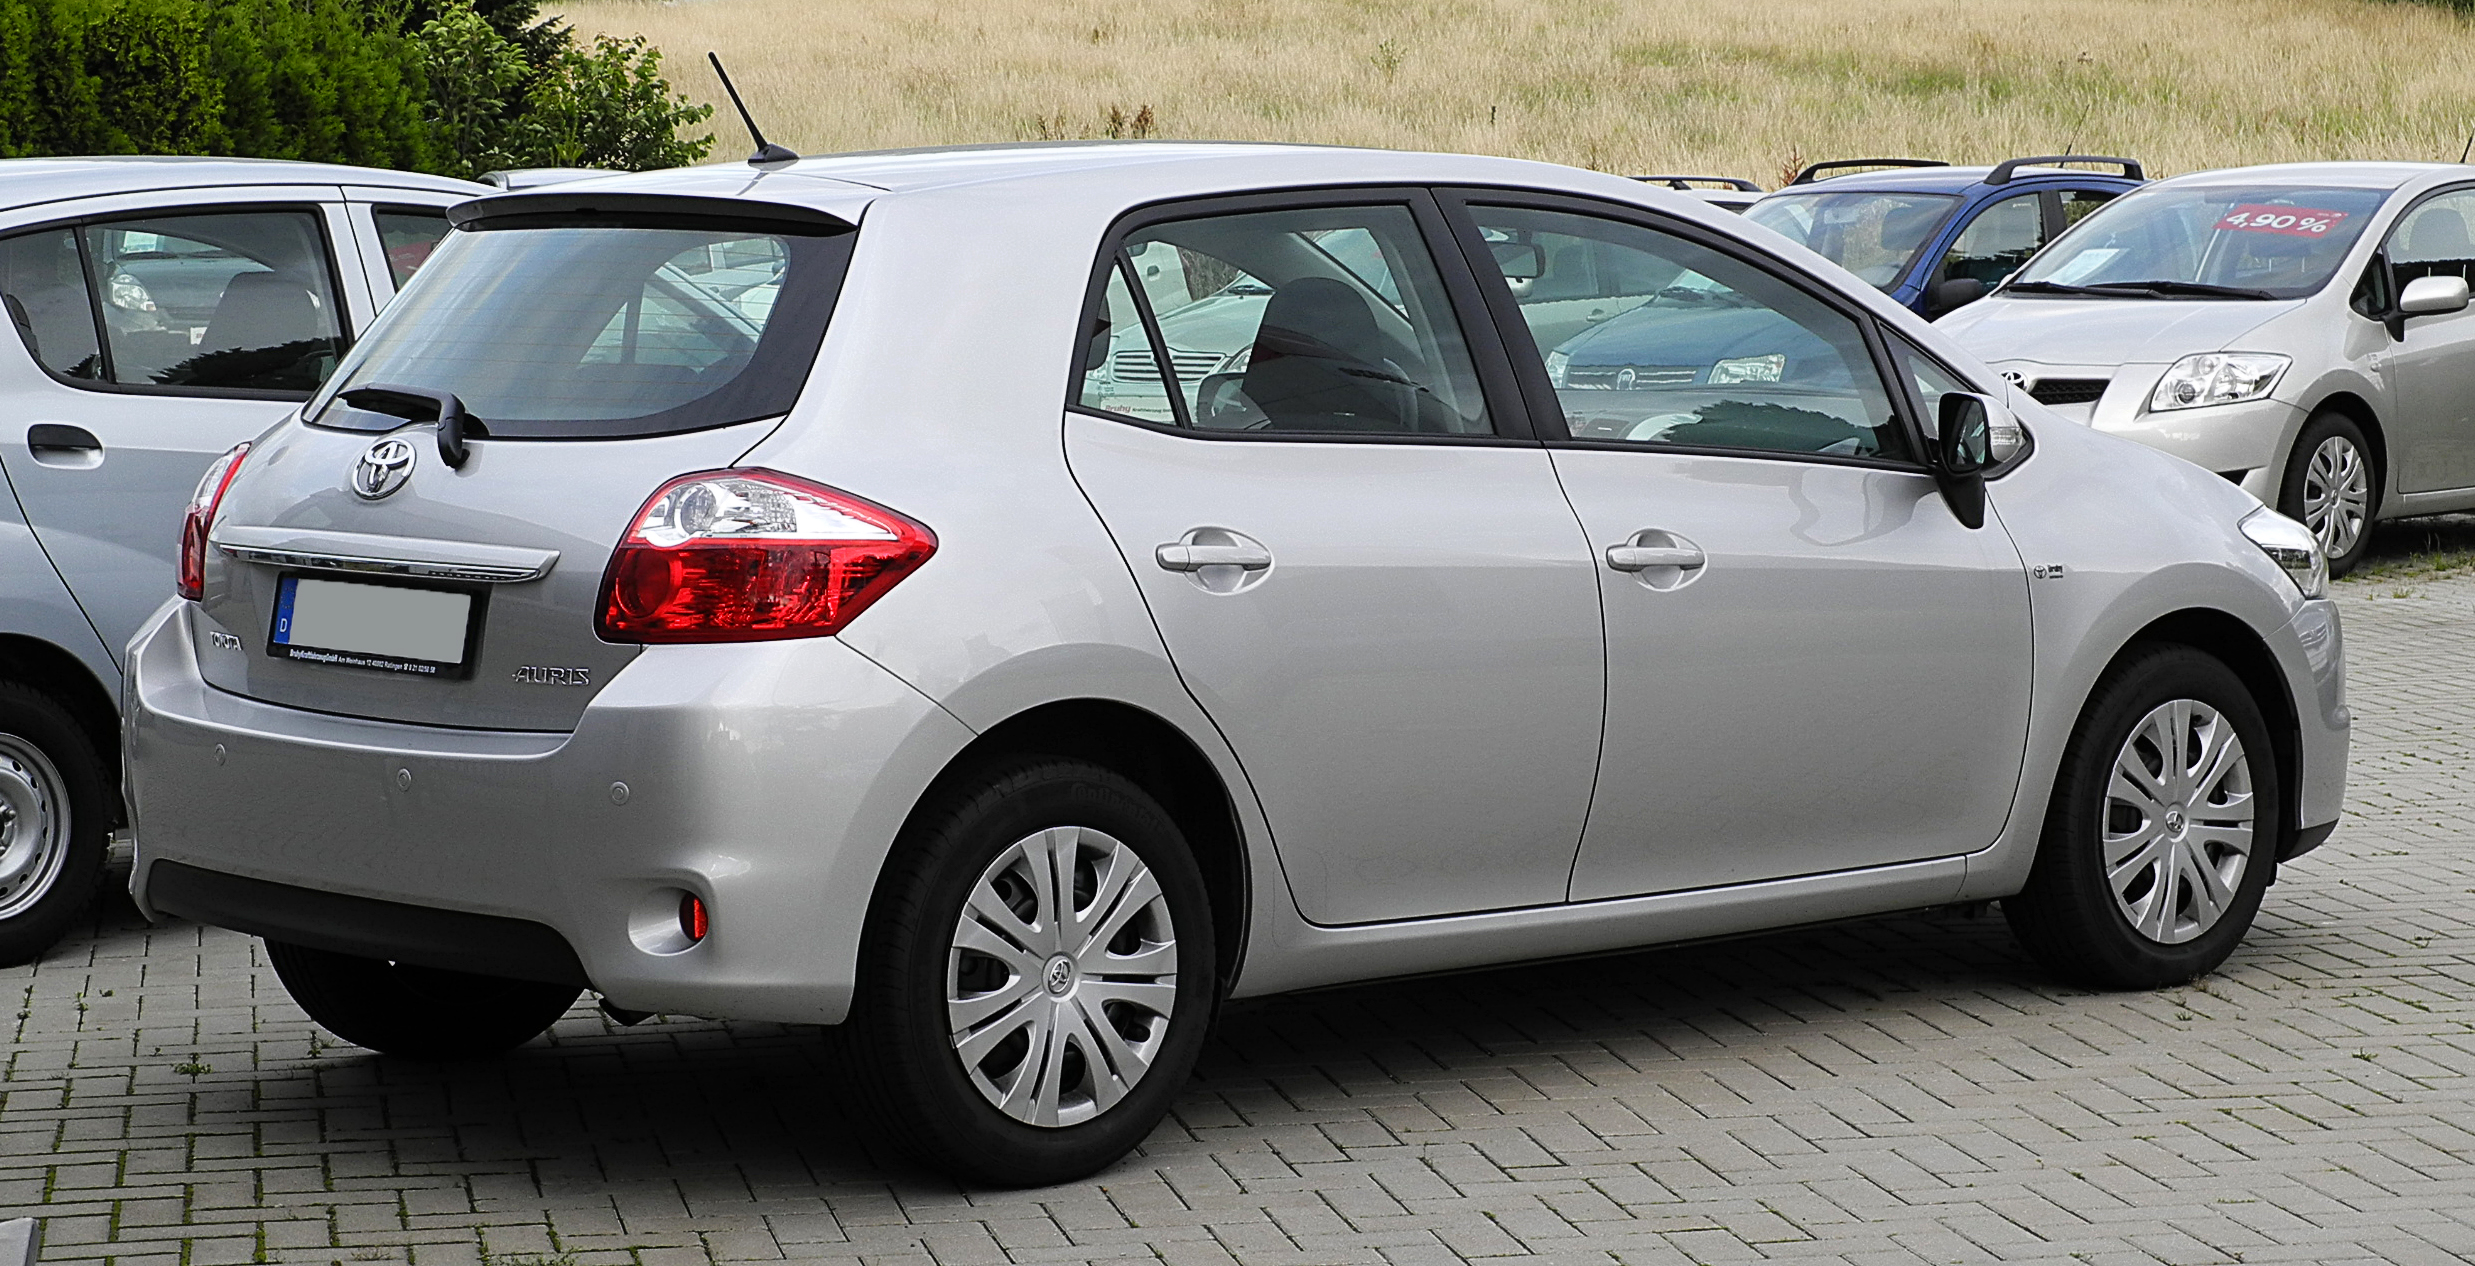 file toyota auris 1 6 life facelift heckansicht 21 juni 2011 wikimedia. Black Bedroom Furniture Sets. Home Design Ideas